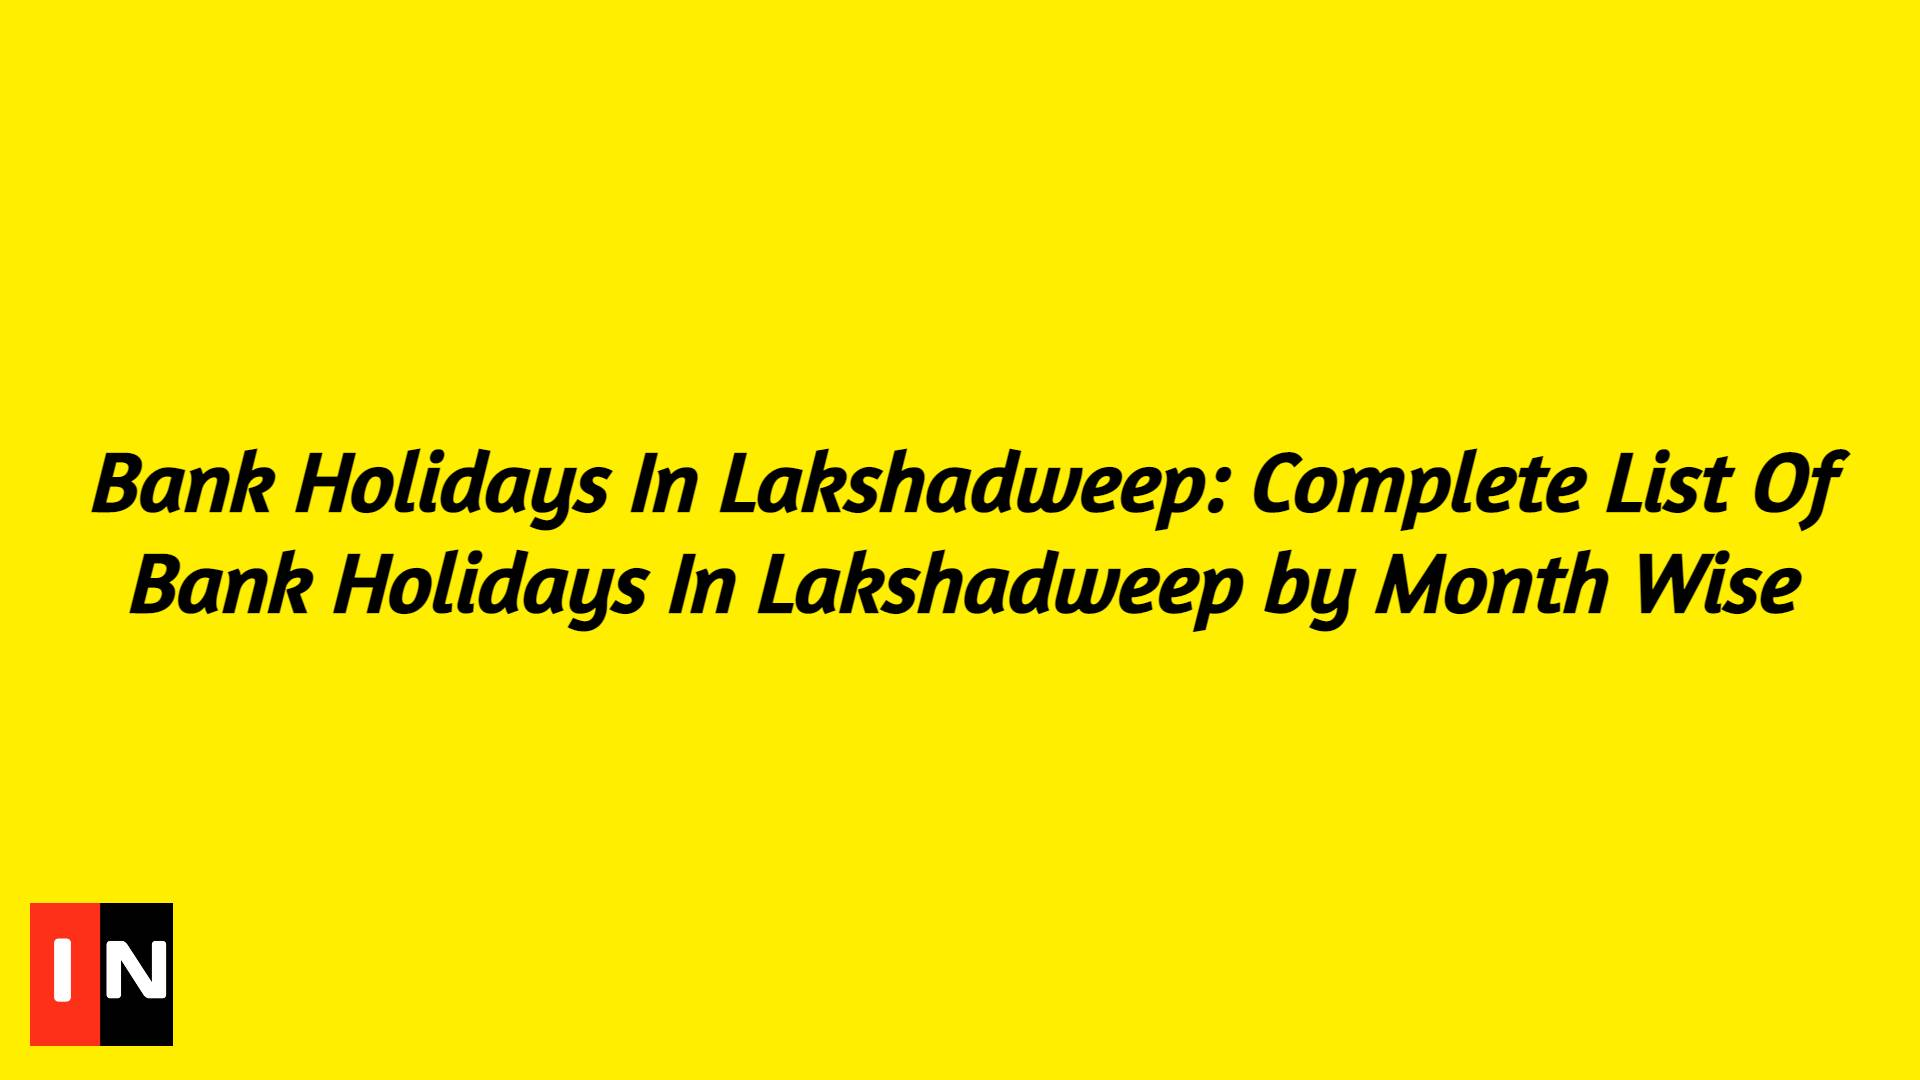 Bank Holidays In Lakshadweep: Complete List Of Bank Holidays In Lakshadweep by Month Wise